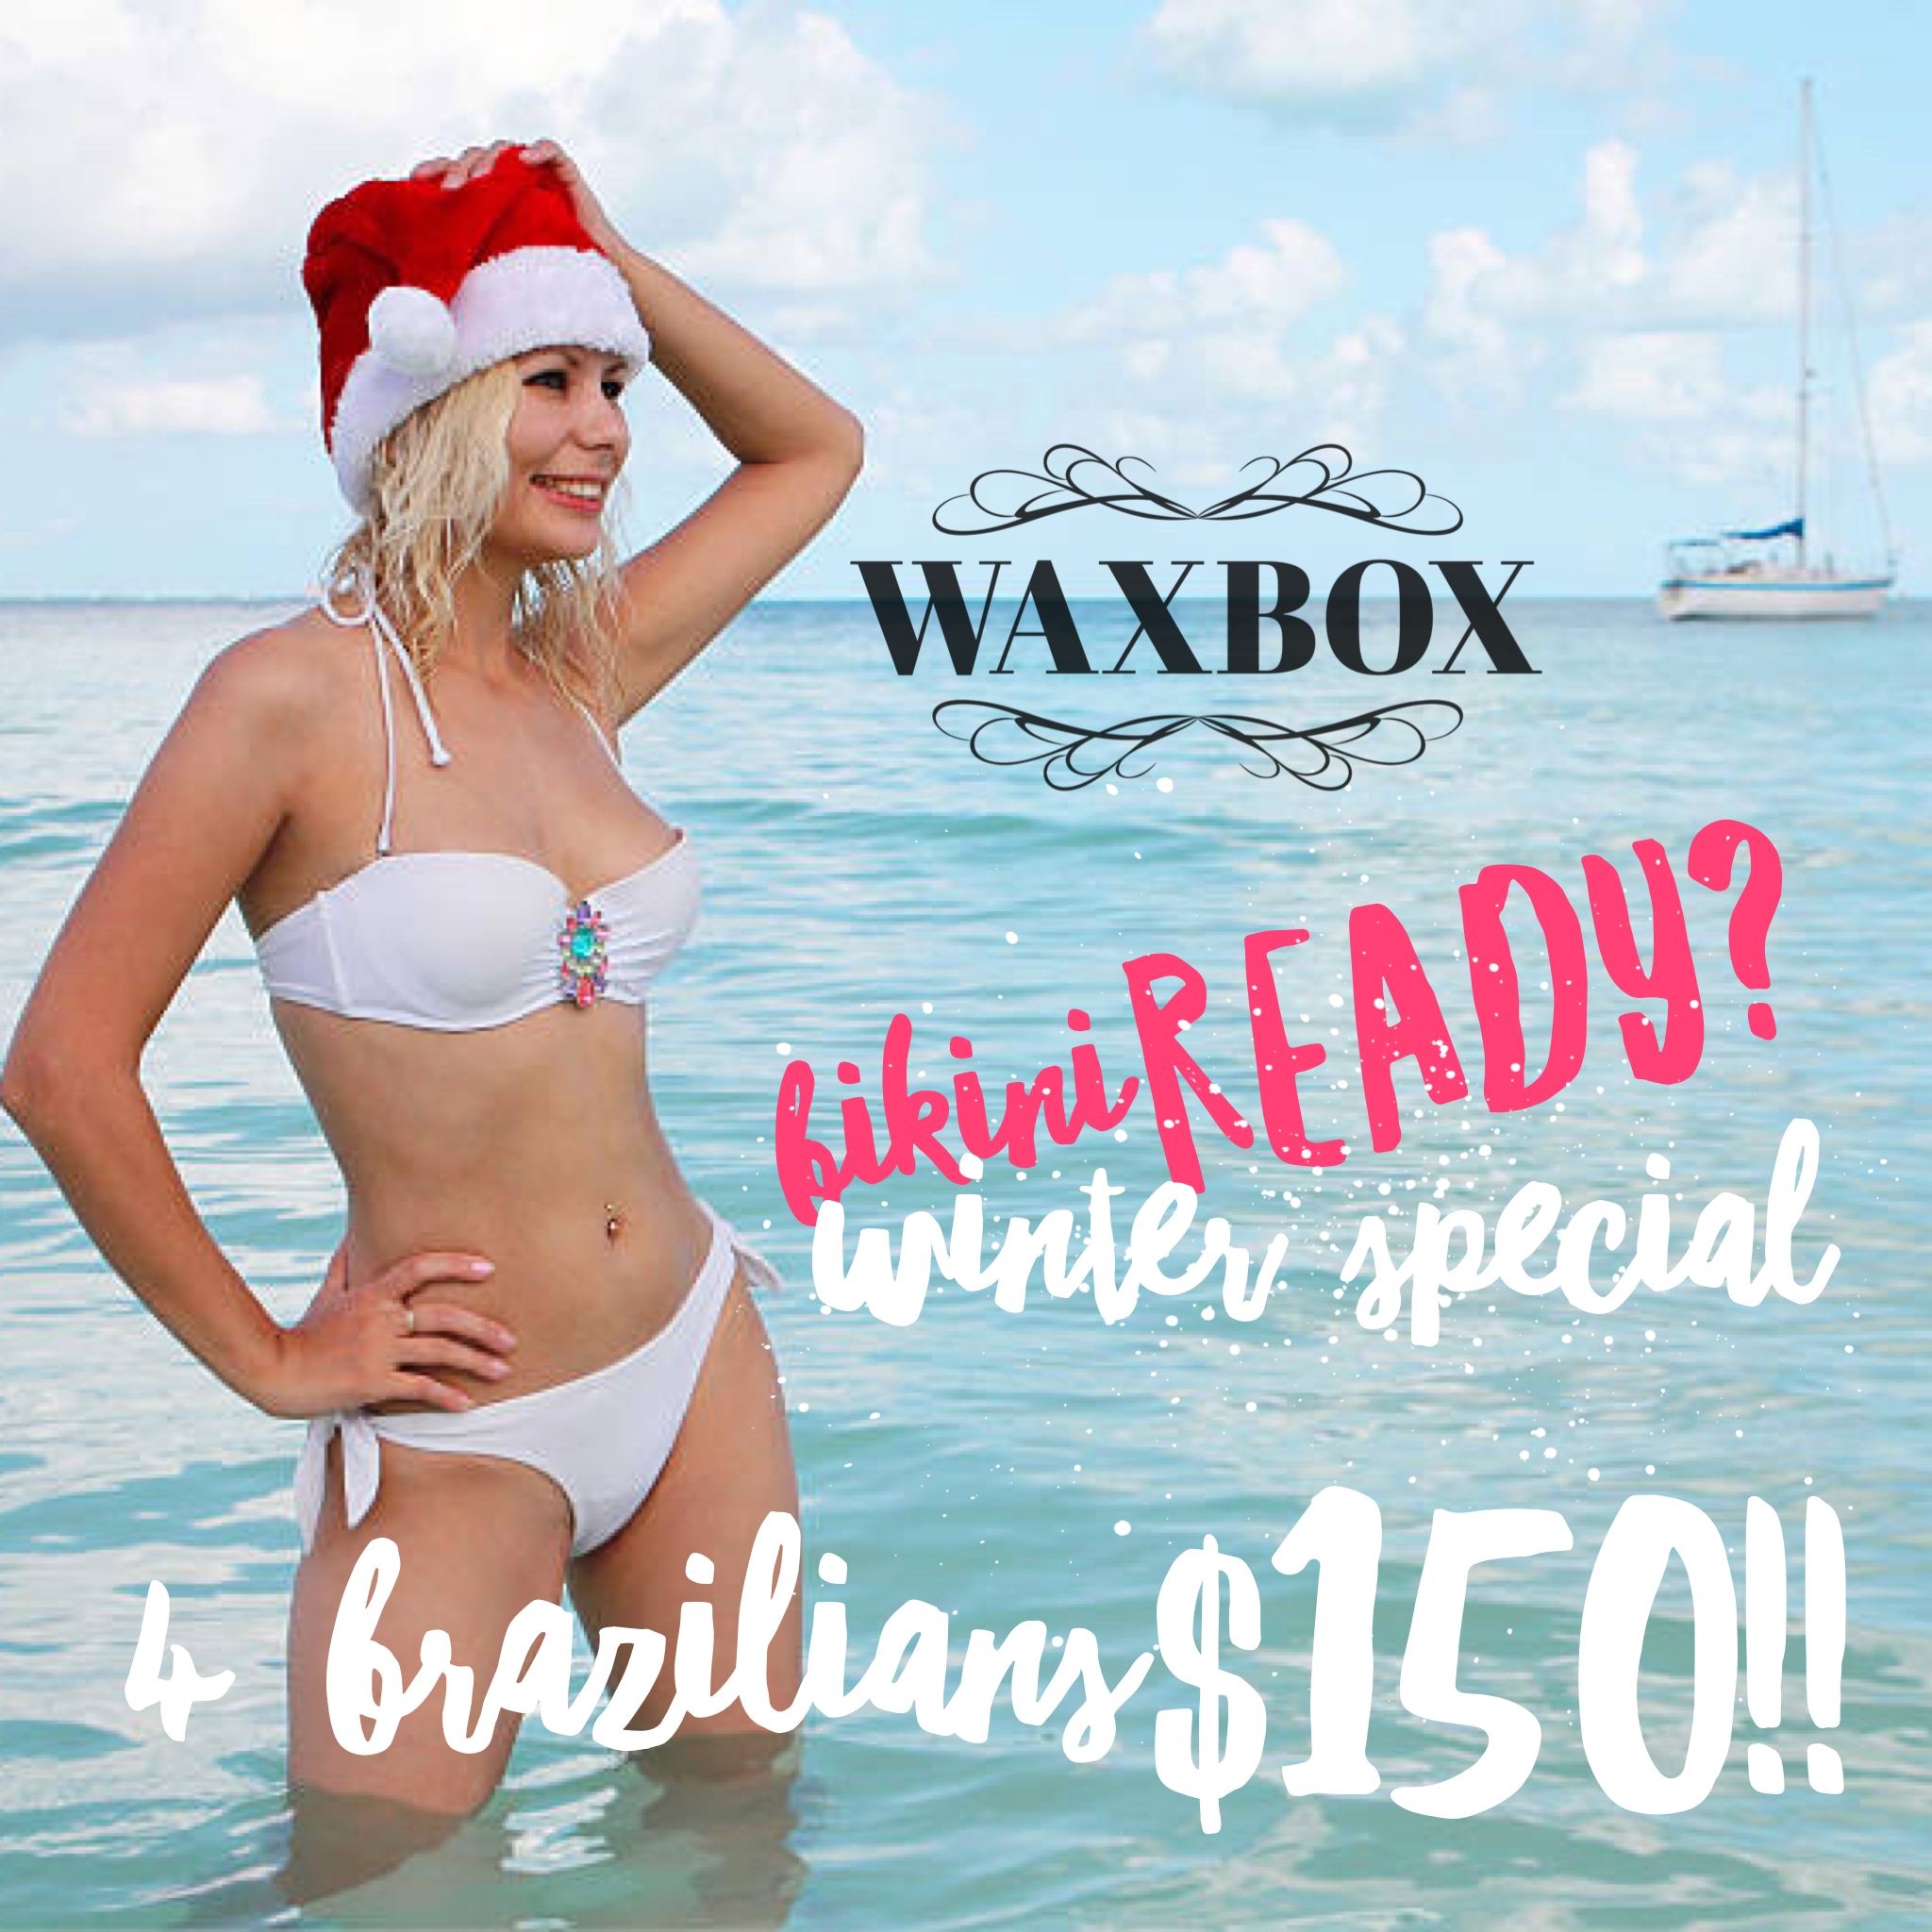 Winter Special!! 4 Brazilians $150!!!!! Available till January 1 *Valid till Dec 31st, 2019